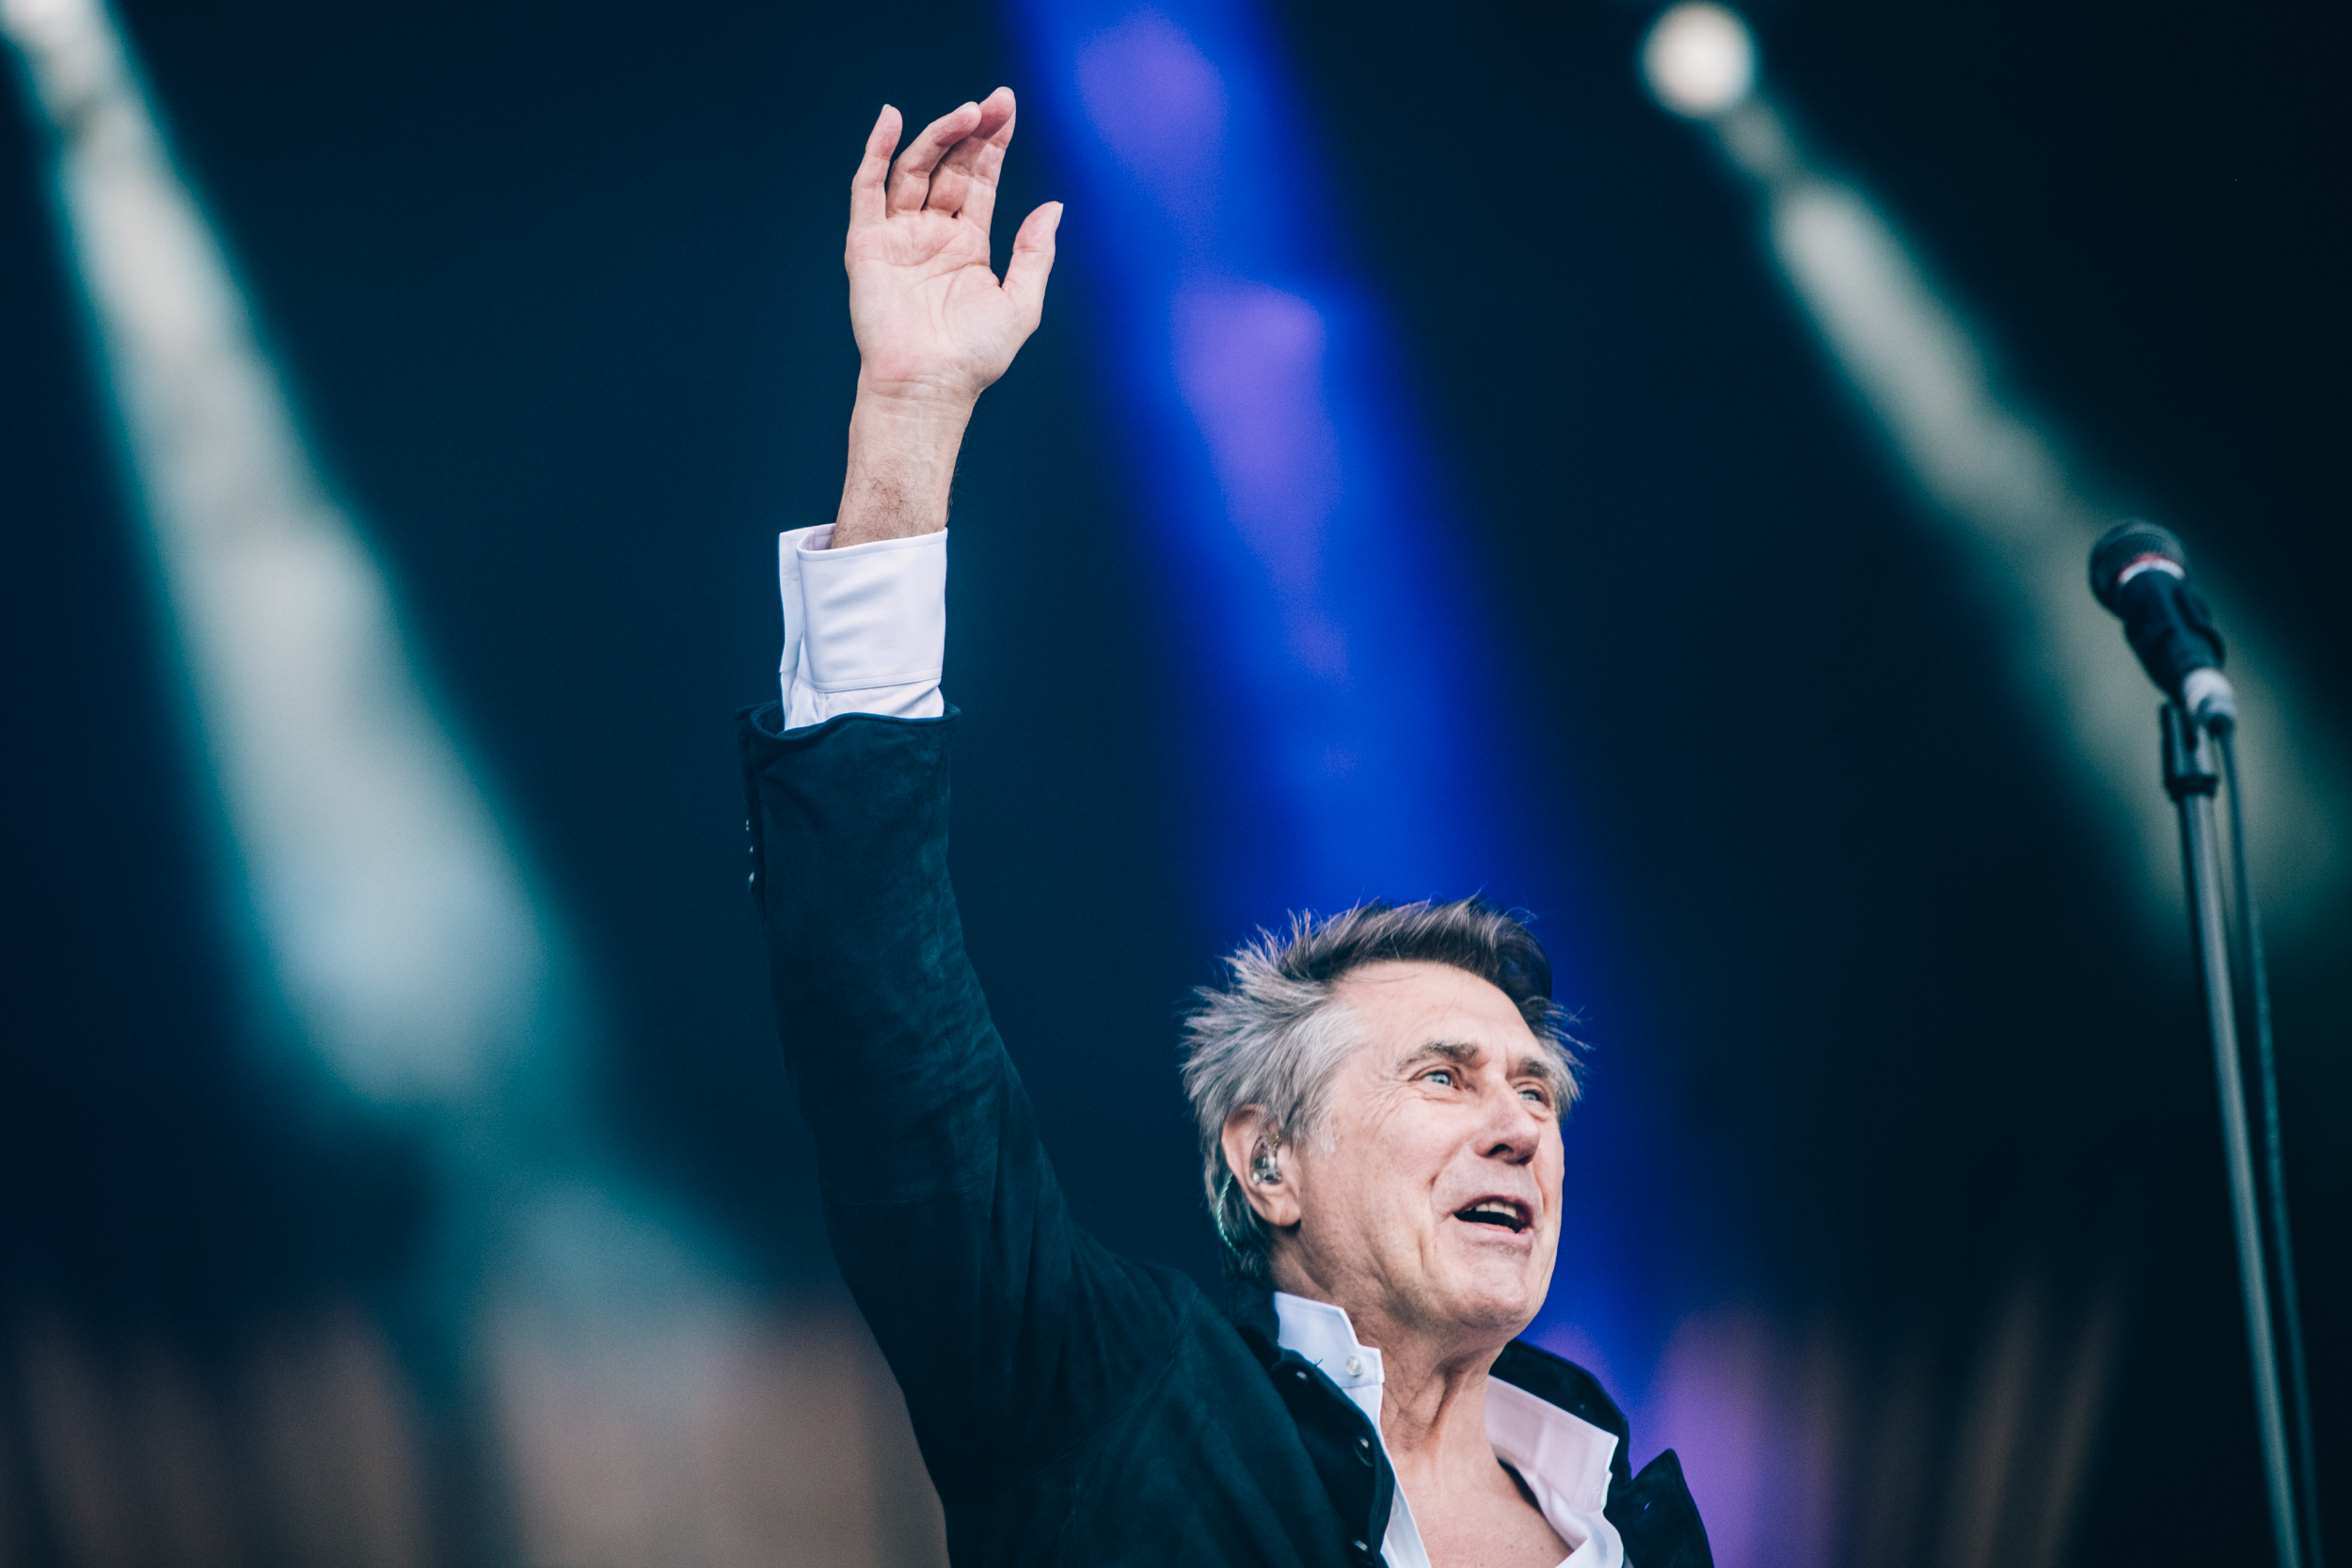 Bryan Ferry salutes an adoring crowd during his appearance on the Nos Stage, Thursday 12 July. Credit: Arlindo Camacho